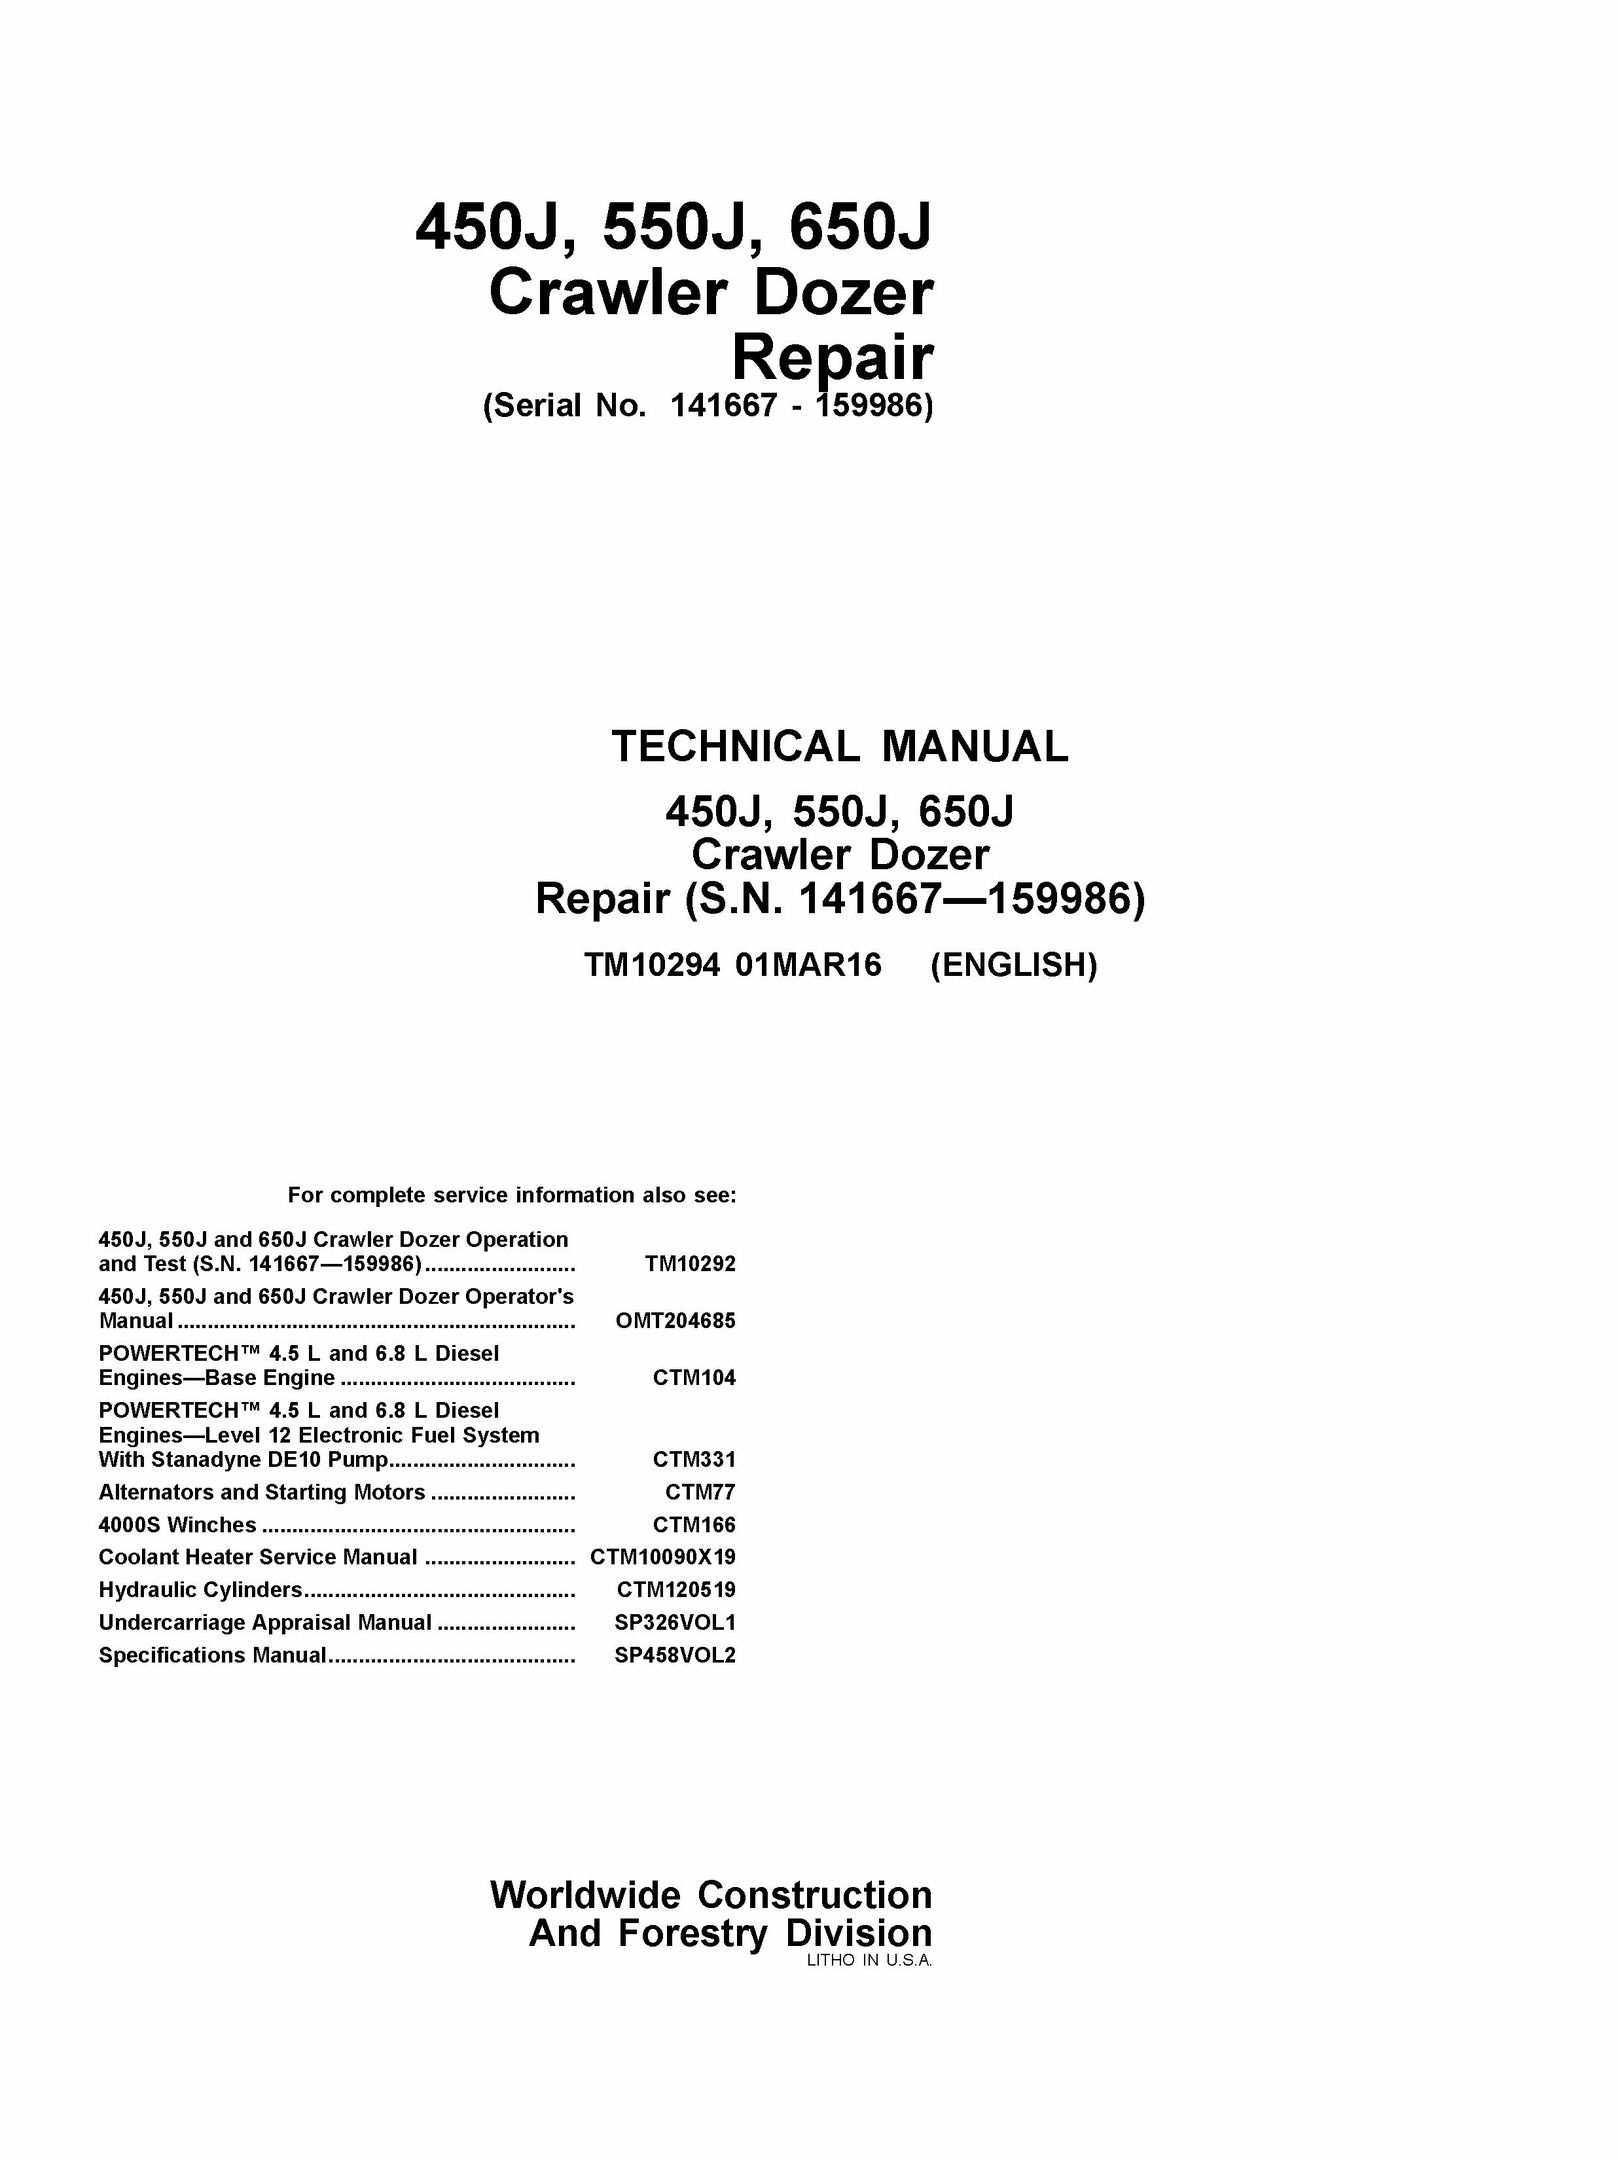 DOWNLOAD JOHN DEERE 450J 550J 650J CRAWLER DOZER REPAIR SERVICE TECHNICAL  MANUAL TM1029